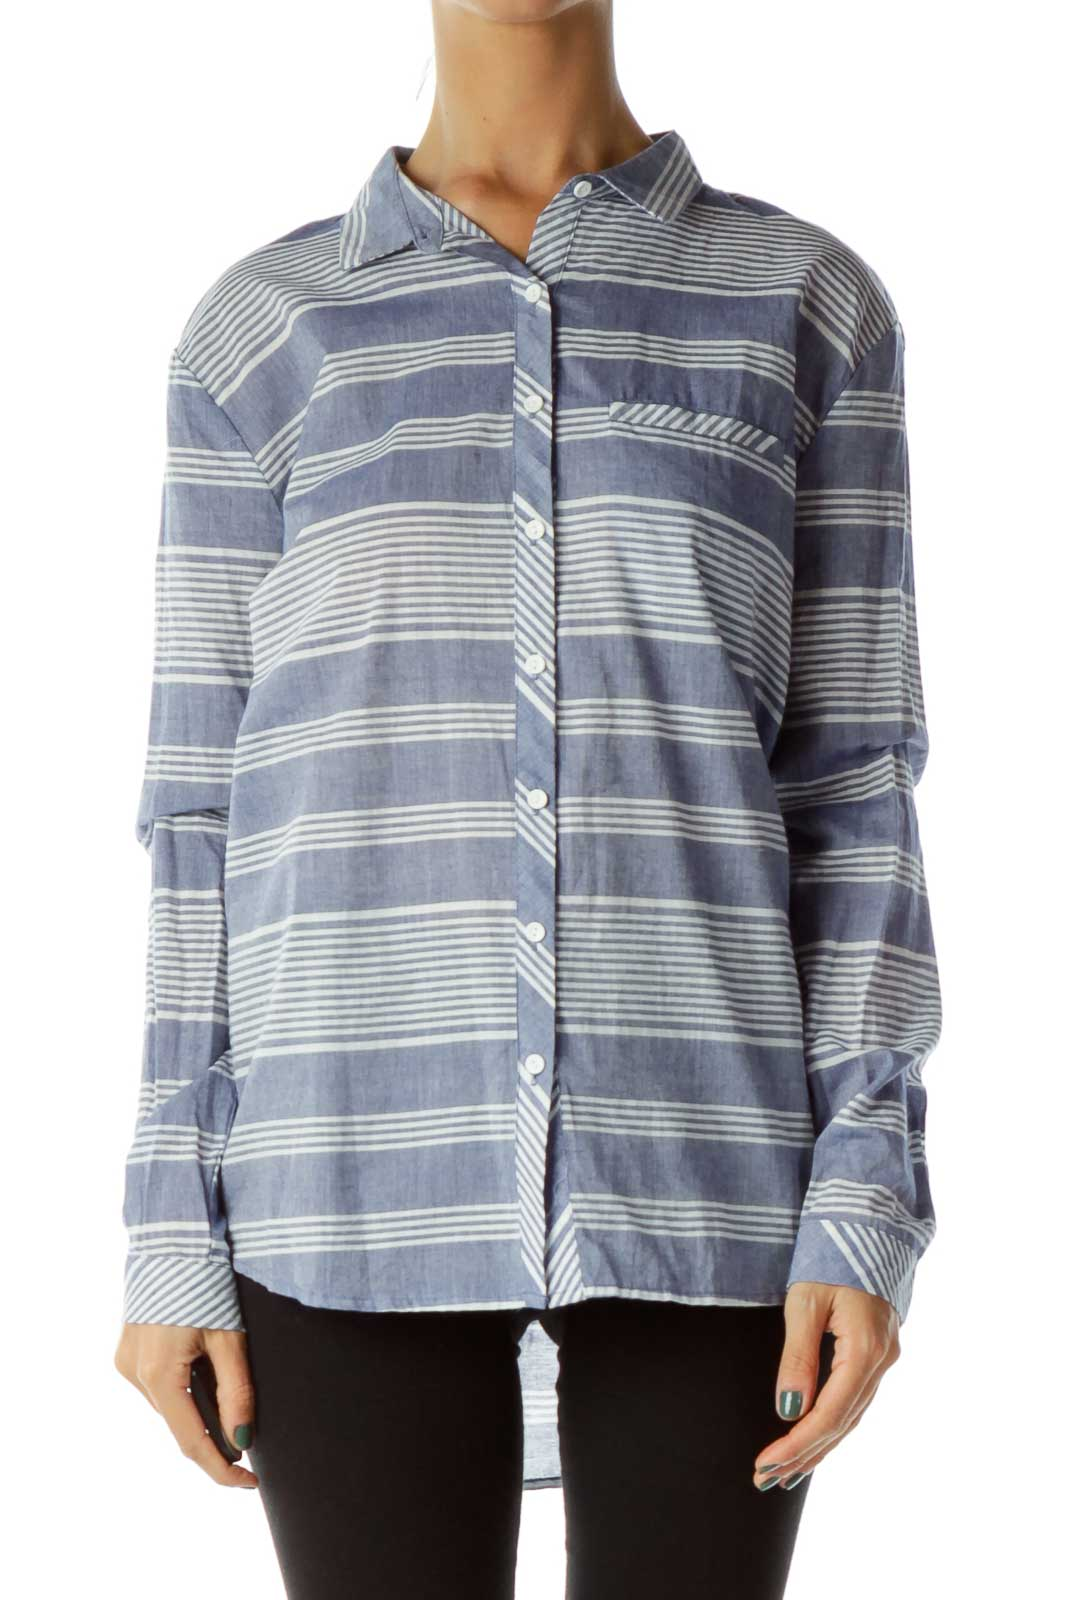 Blue White Striped Shirt Front